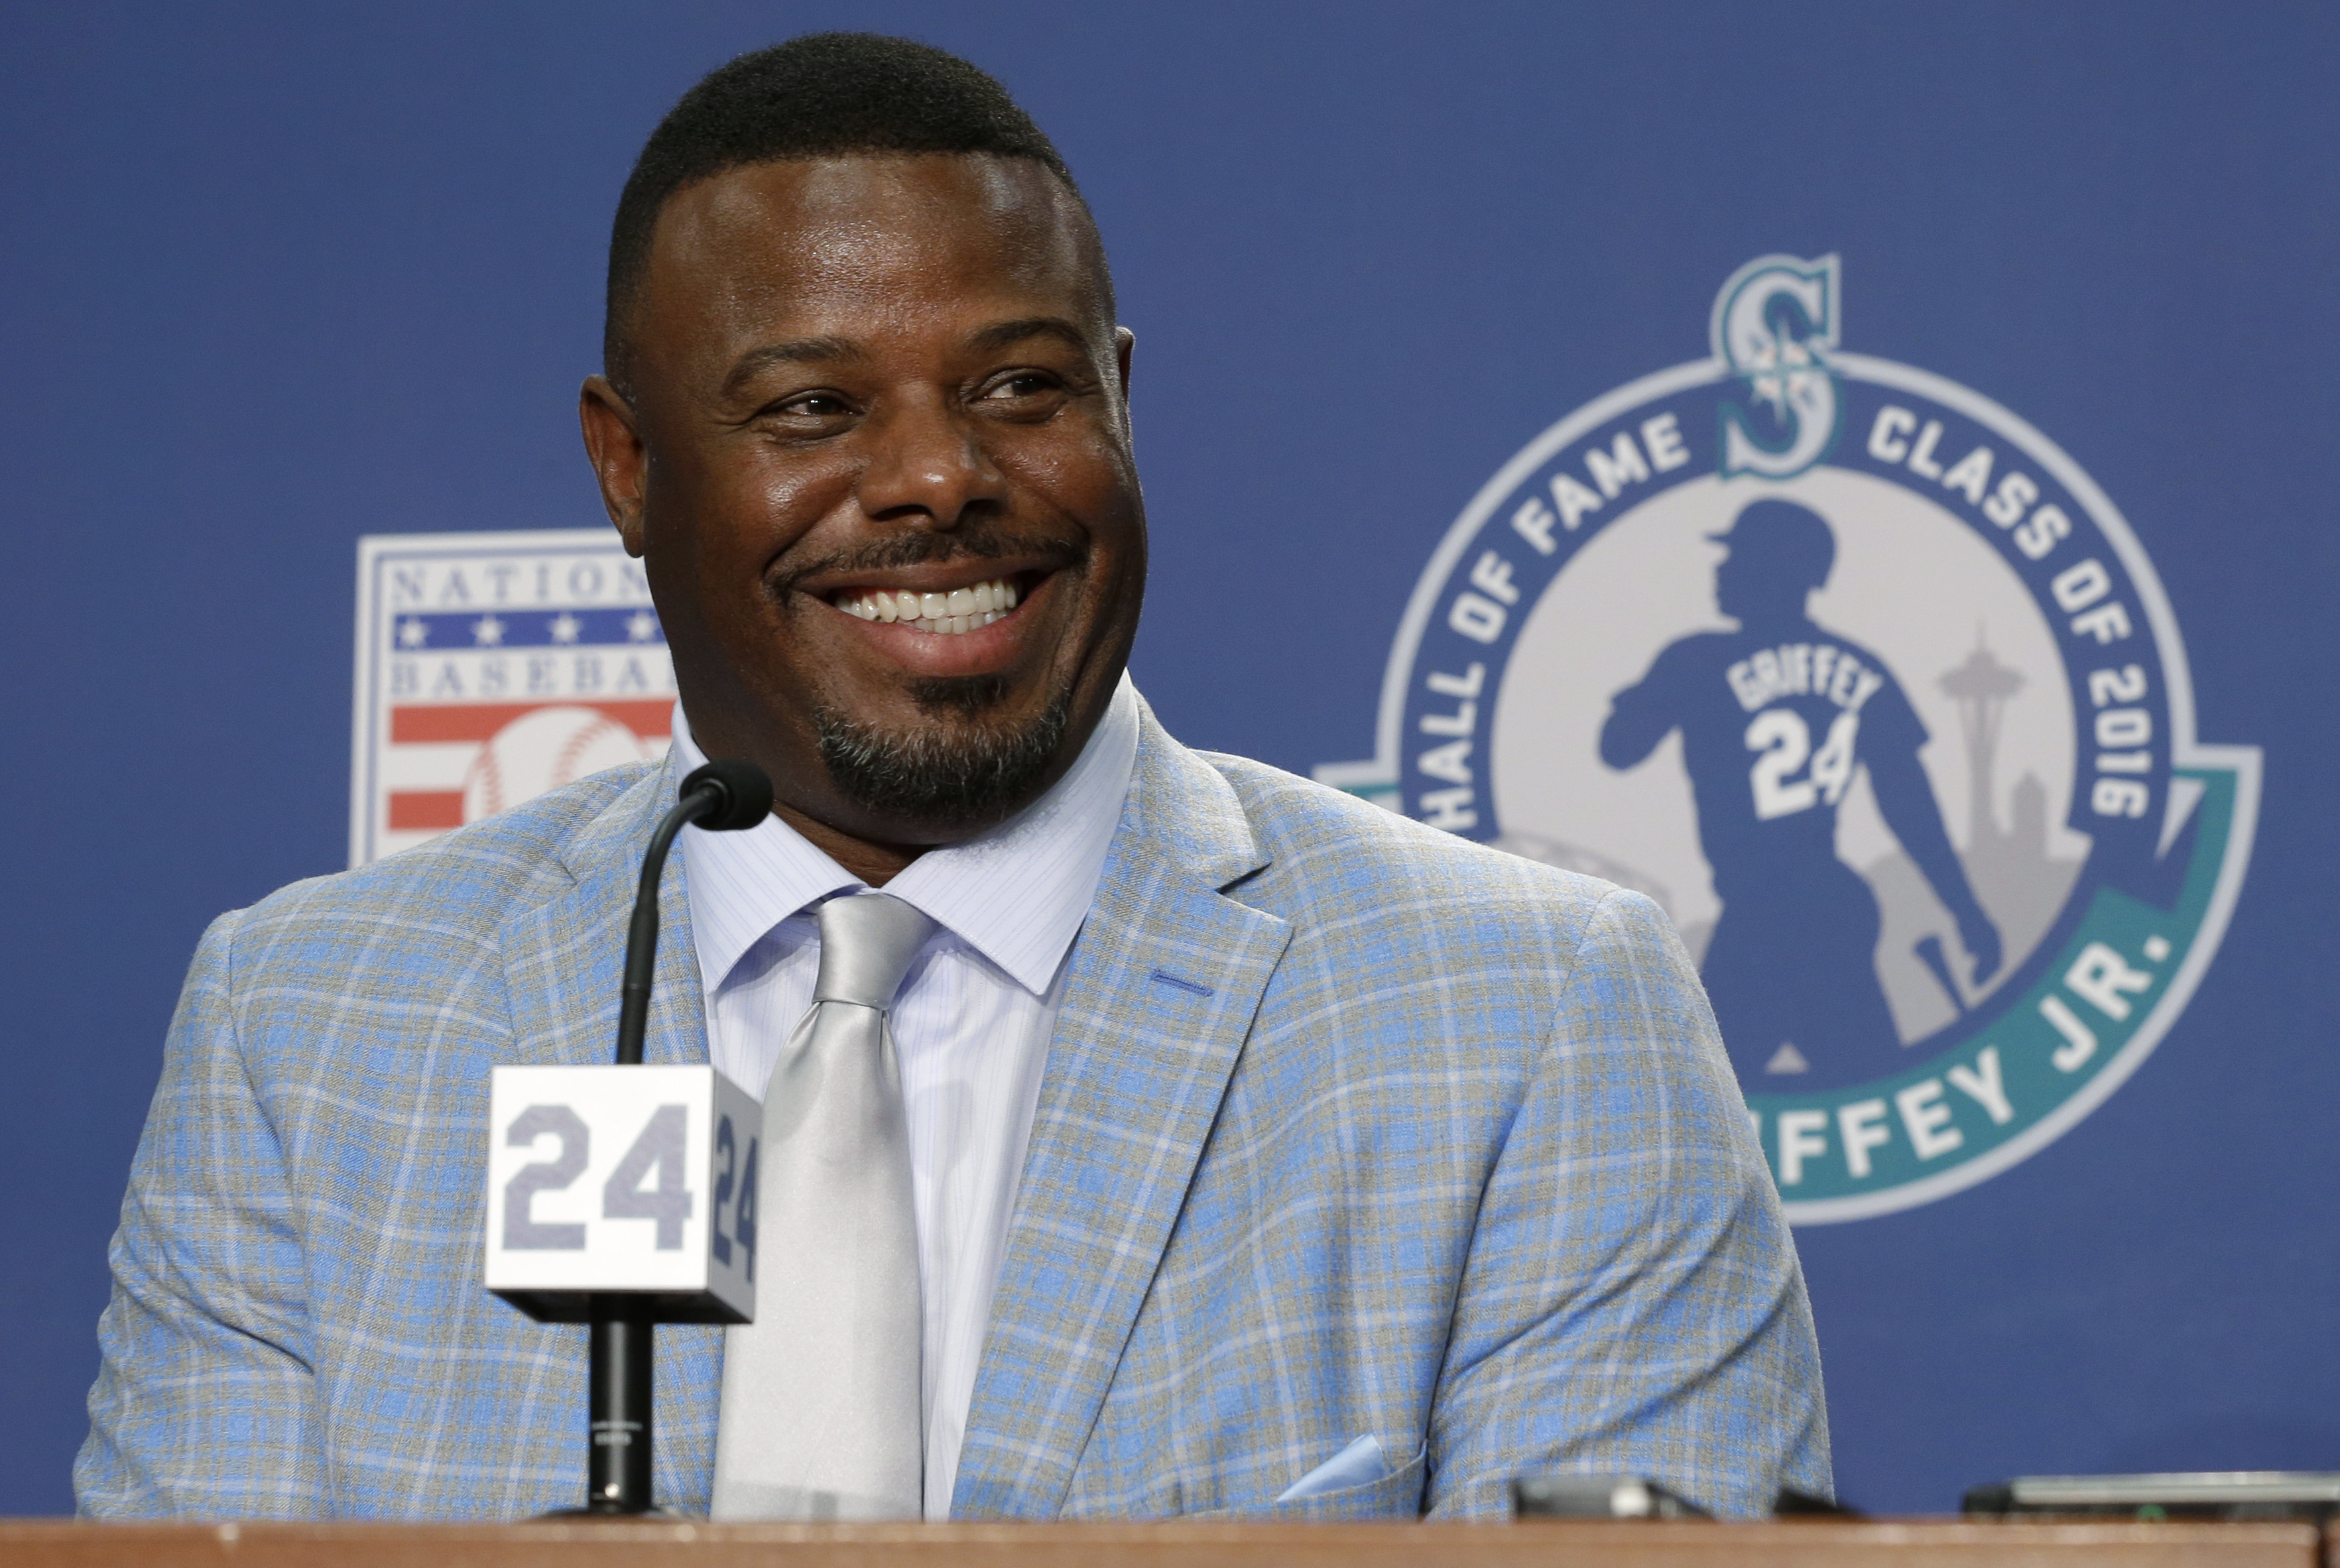 Seattle Mariners Hall-of-Famer Ken Griffey Jr. talks to reporters Friday, Aug. 5, 2016, before a baseball game between the Mariners and the Los Angeles Angels in Seattle. On Saturday, the Mariners will retire Griffey's No. 24. (AP Photo/Ted S. Warren)